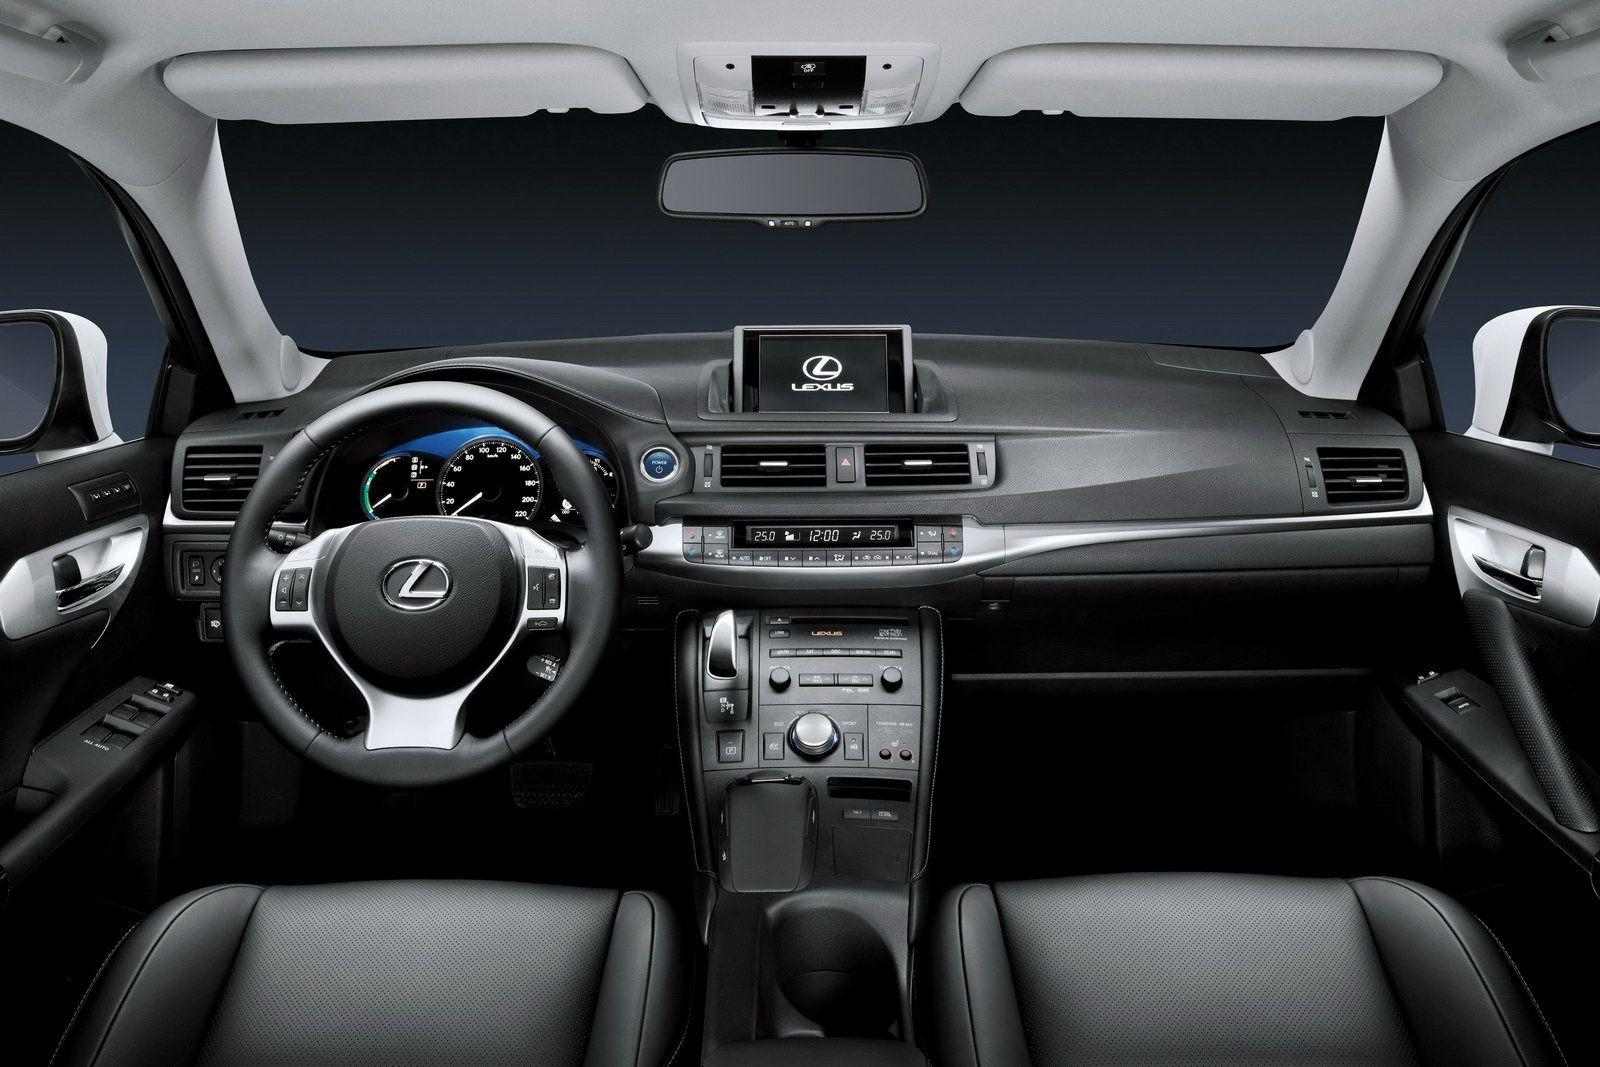 New lexus ct 200h official details and photos leaked lexus ct 200h 2011 img_8